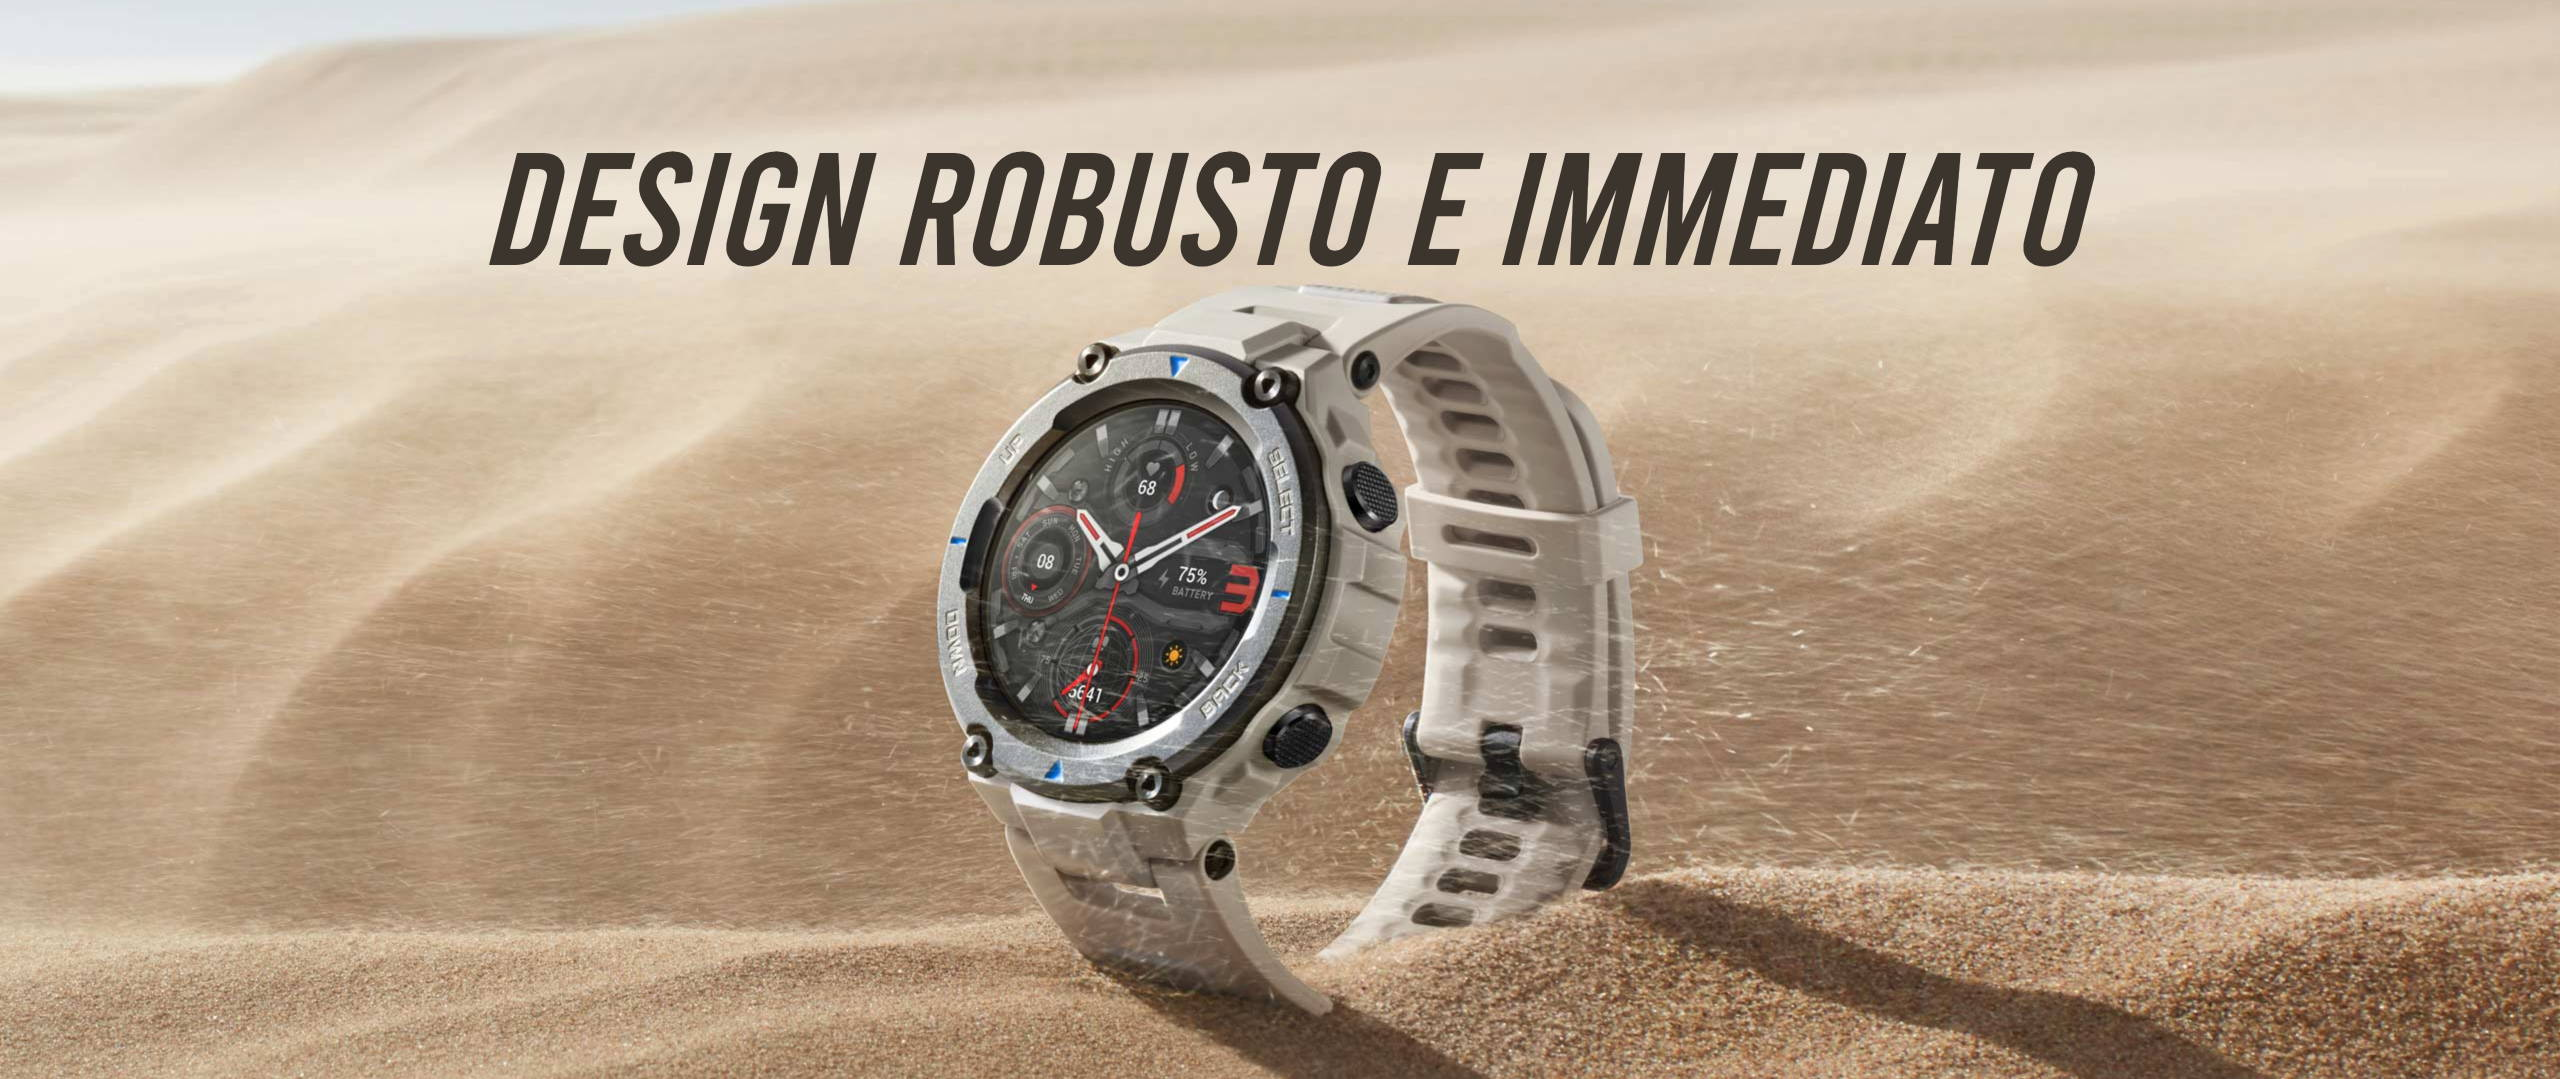 Amazfit T-Rex Pro - Design Robusto E Immediato.